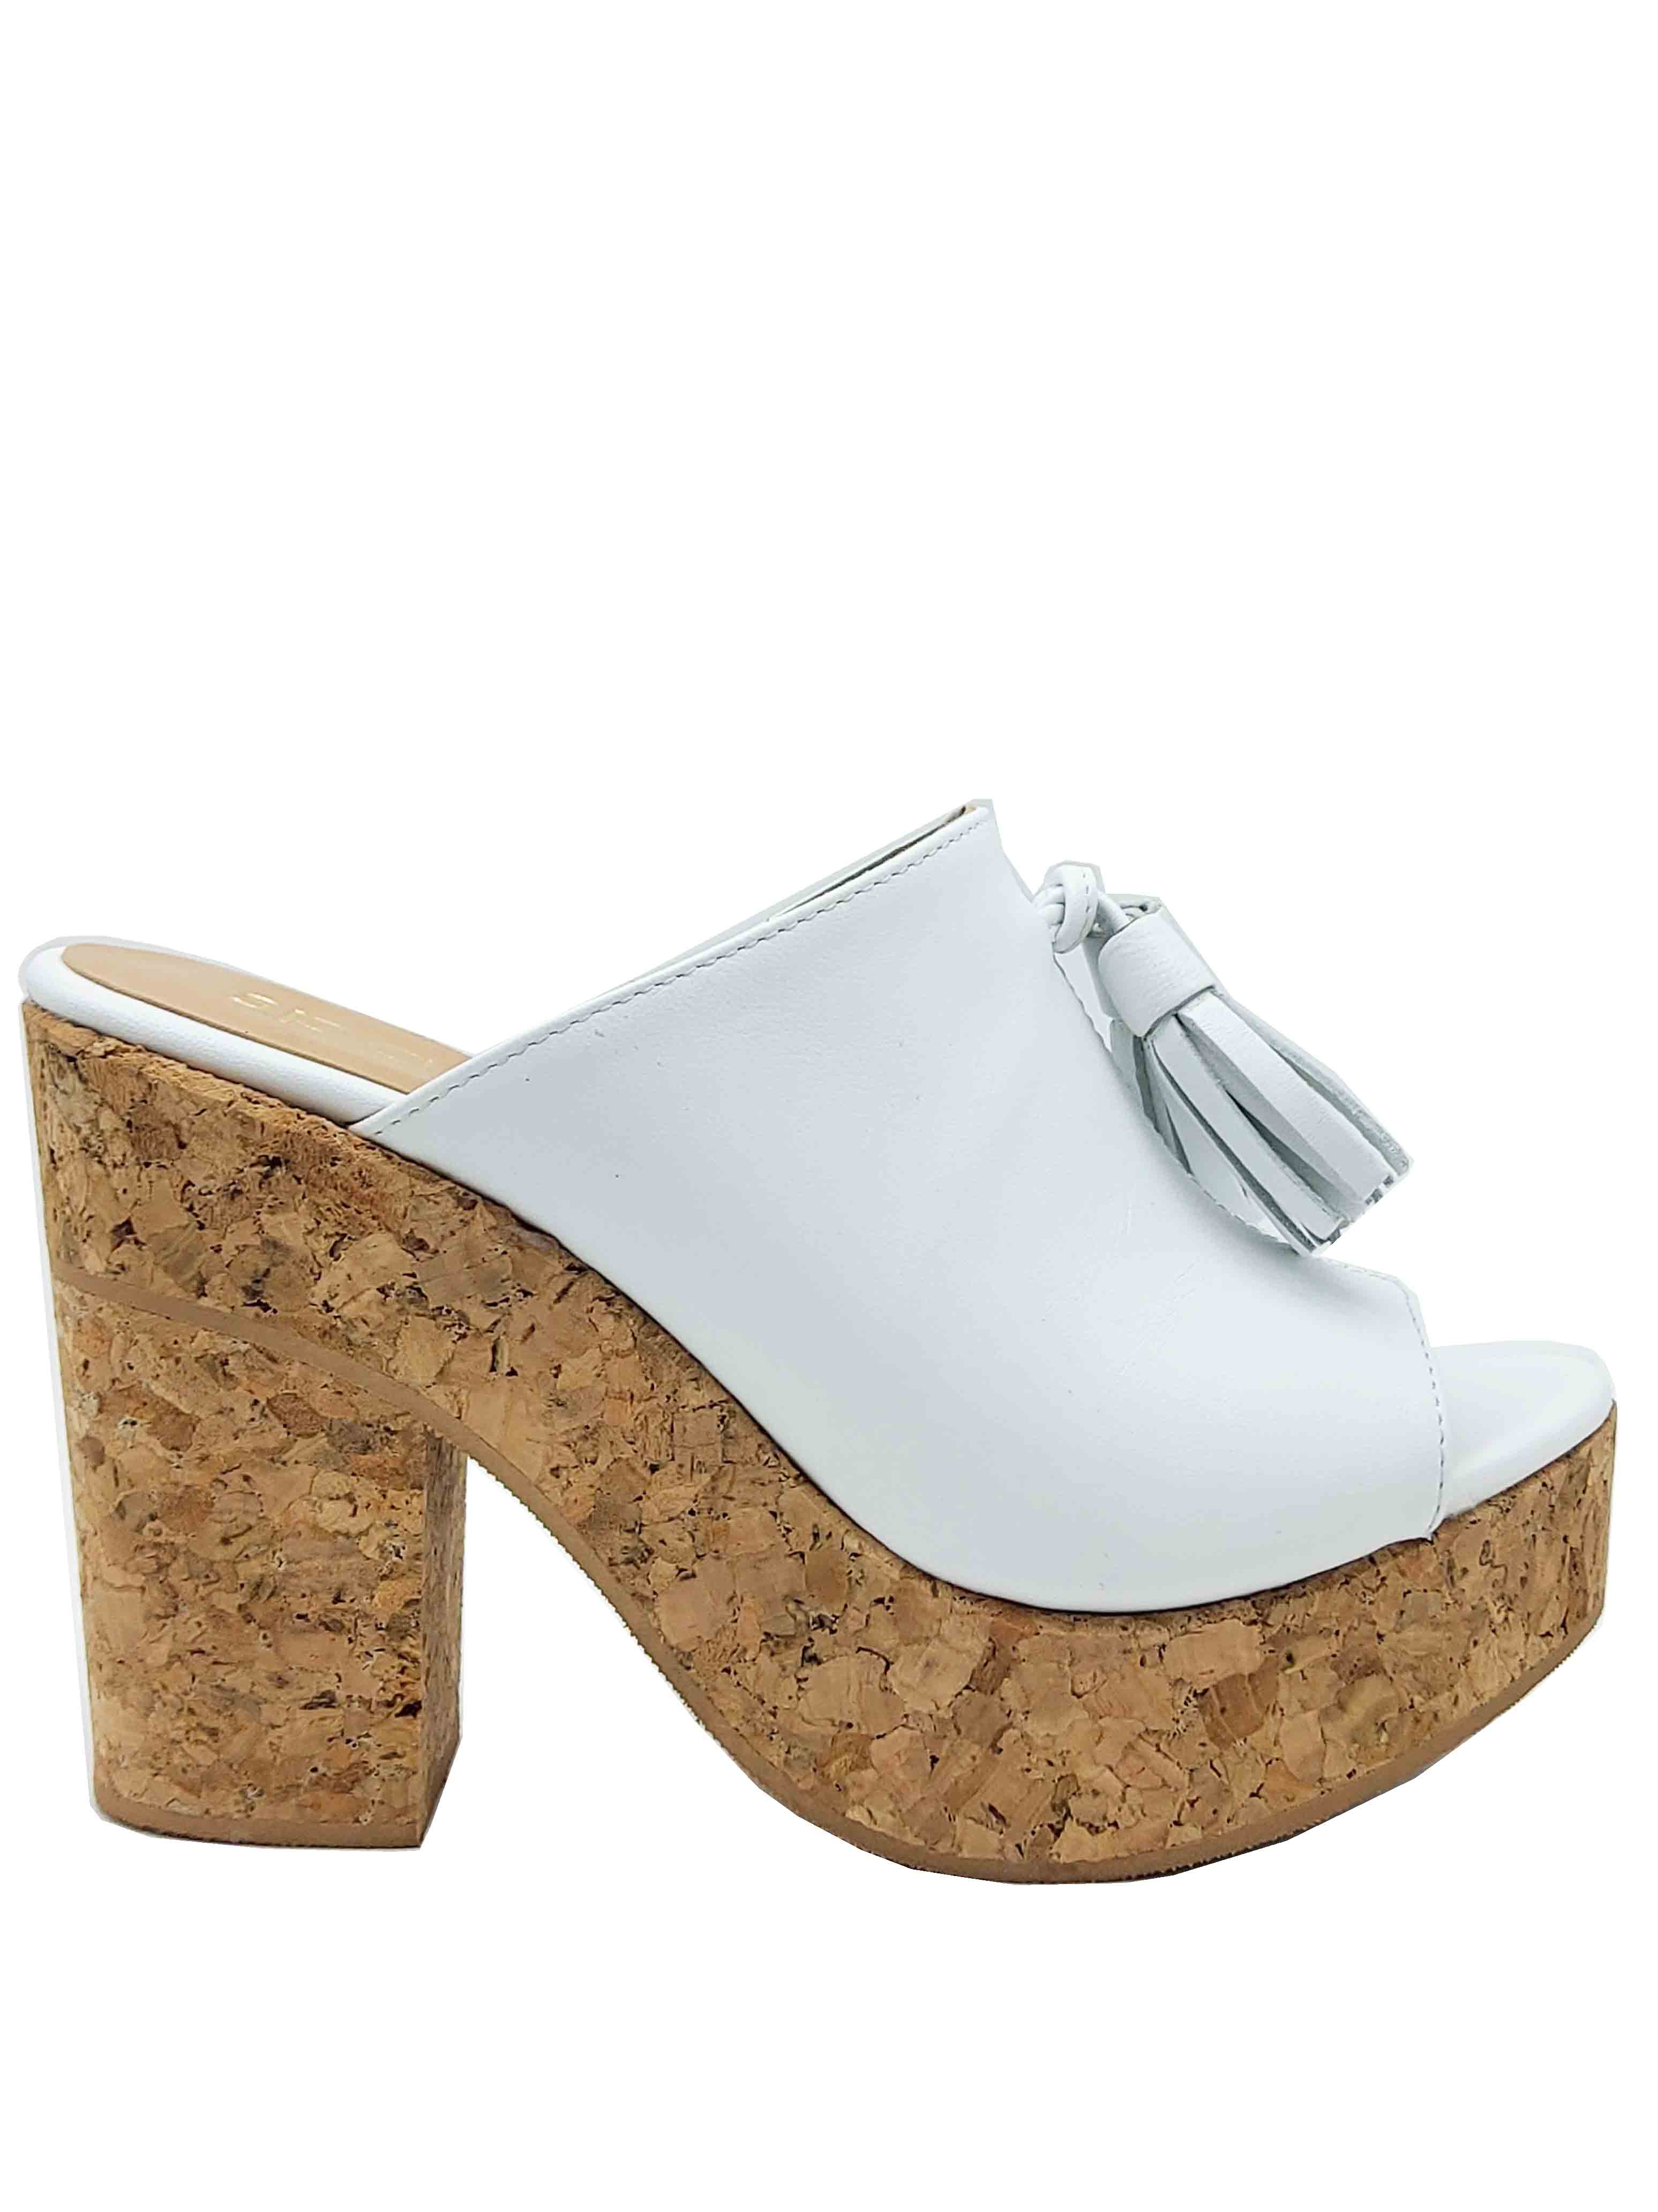 Women's Shoes White Leather Sandals with Bows and High Cork Wedge Spatarella | Sandals | 2075100